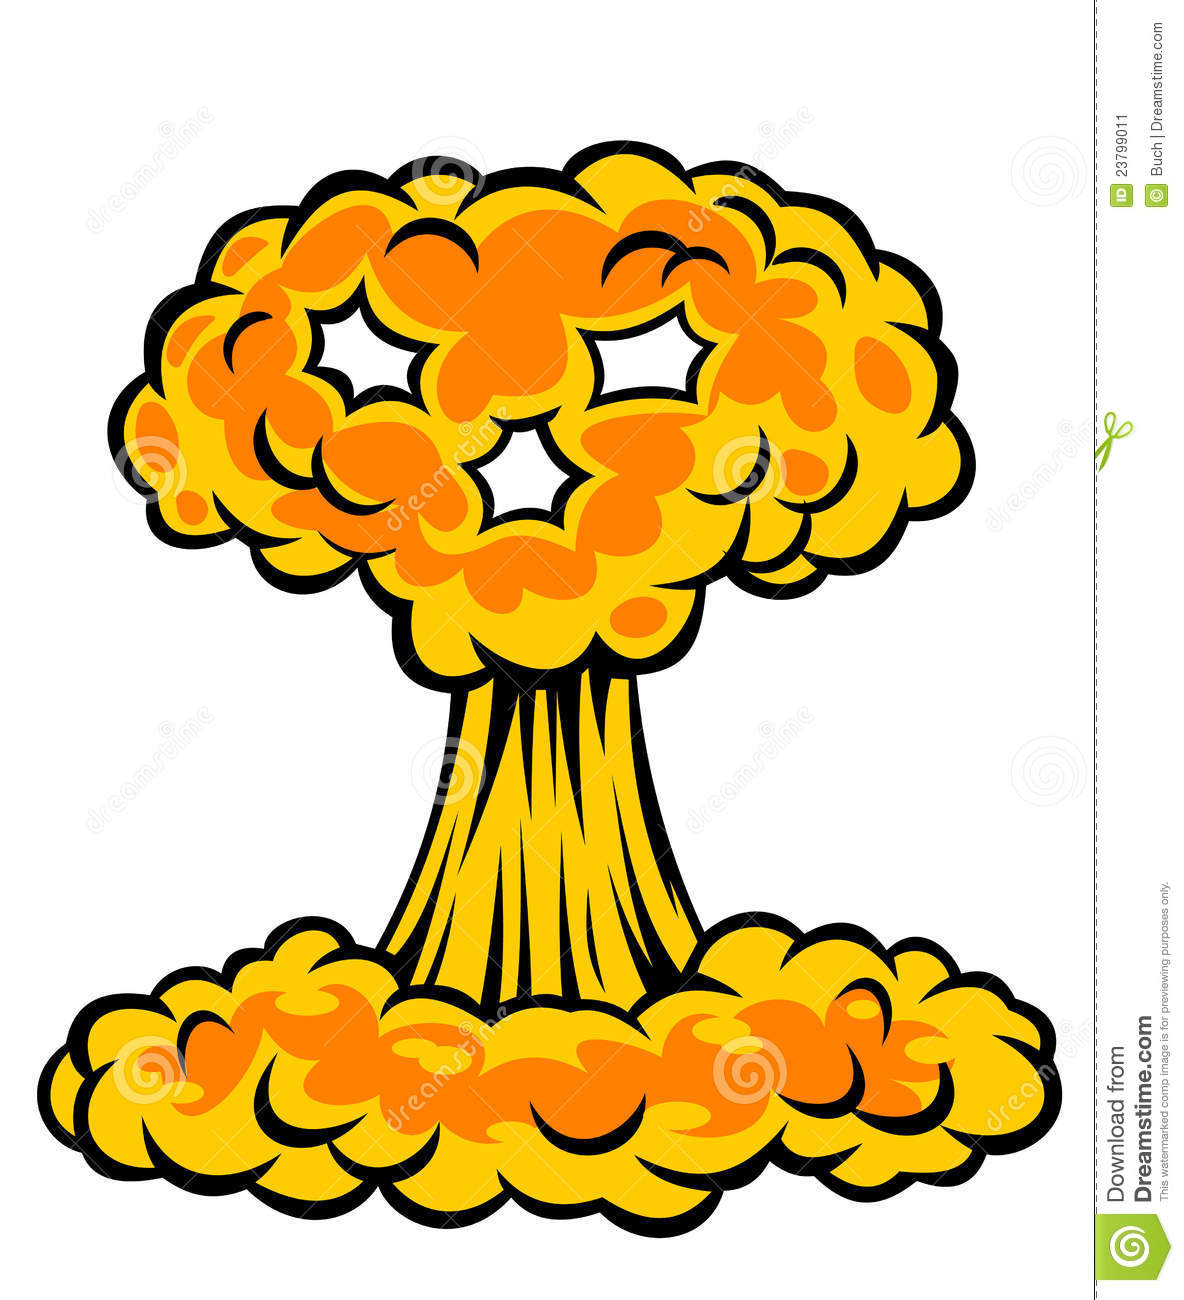 http://images.clipartpanda.com/explosion-clipart-nuclear-explosion-23799011.jpg